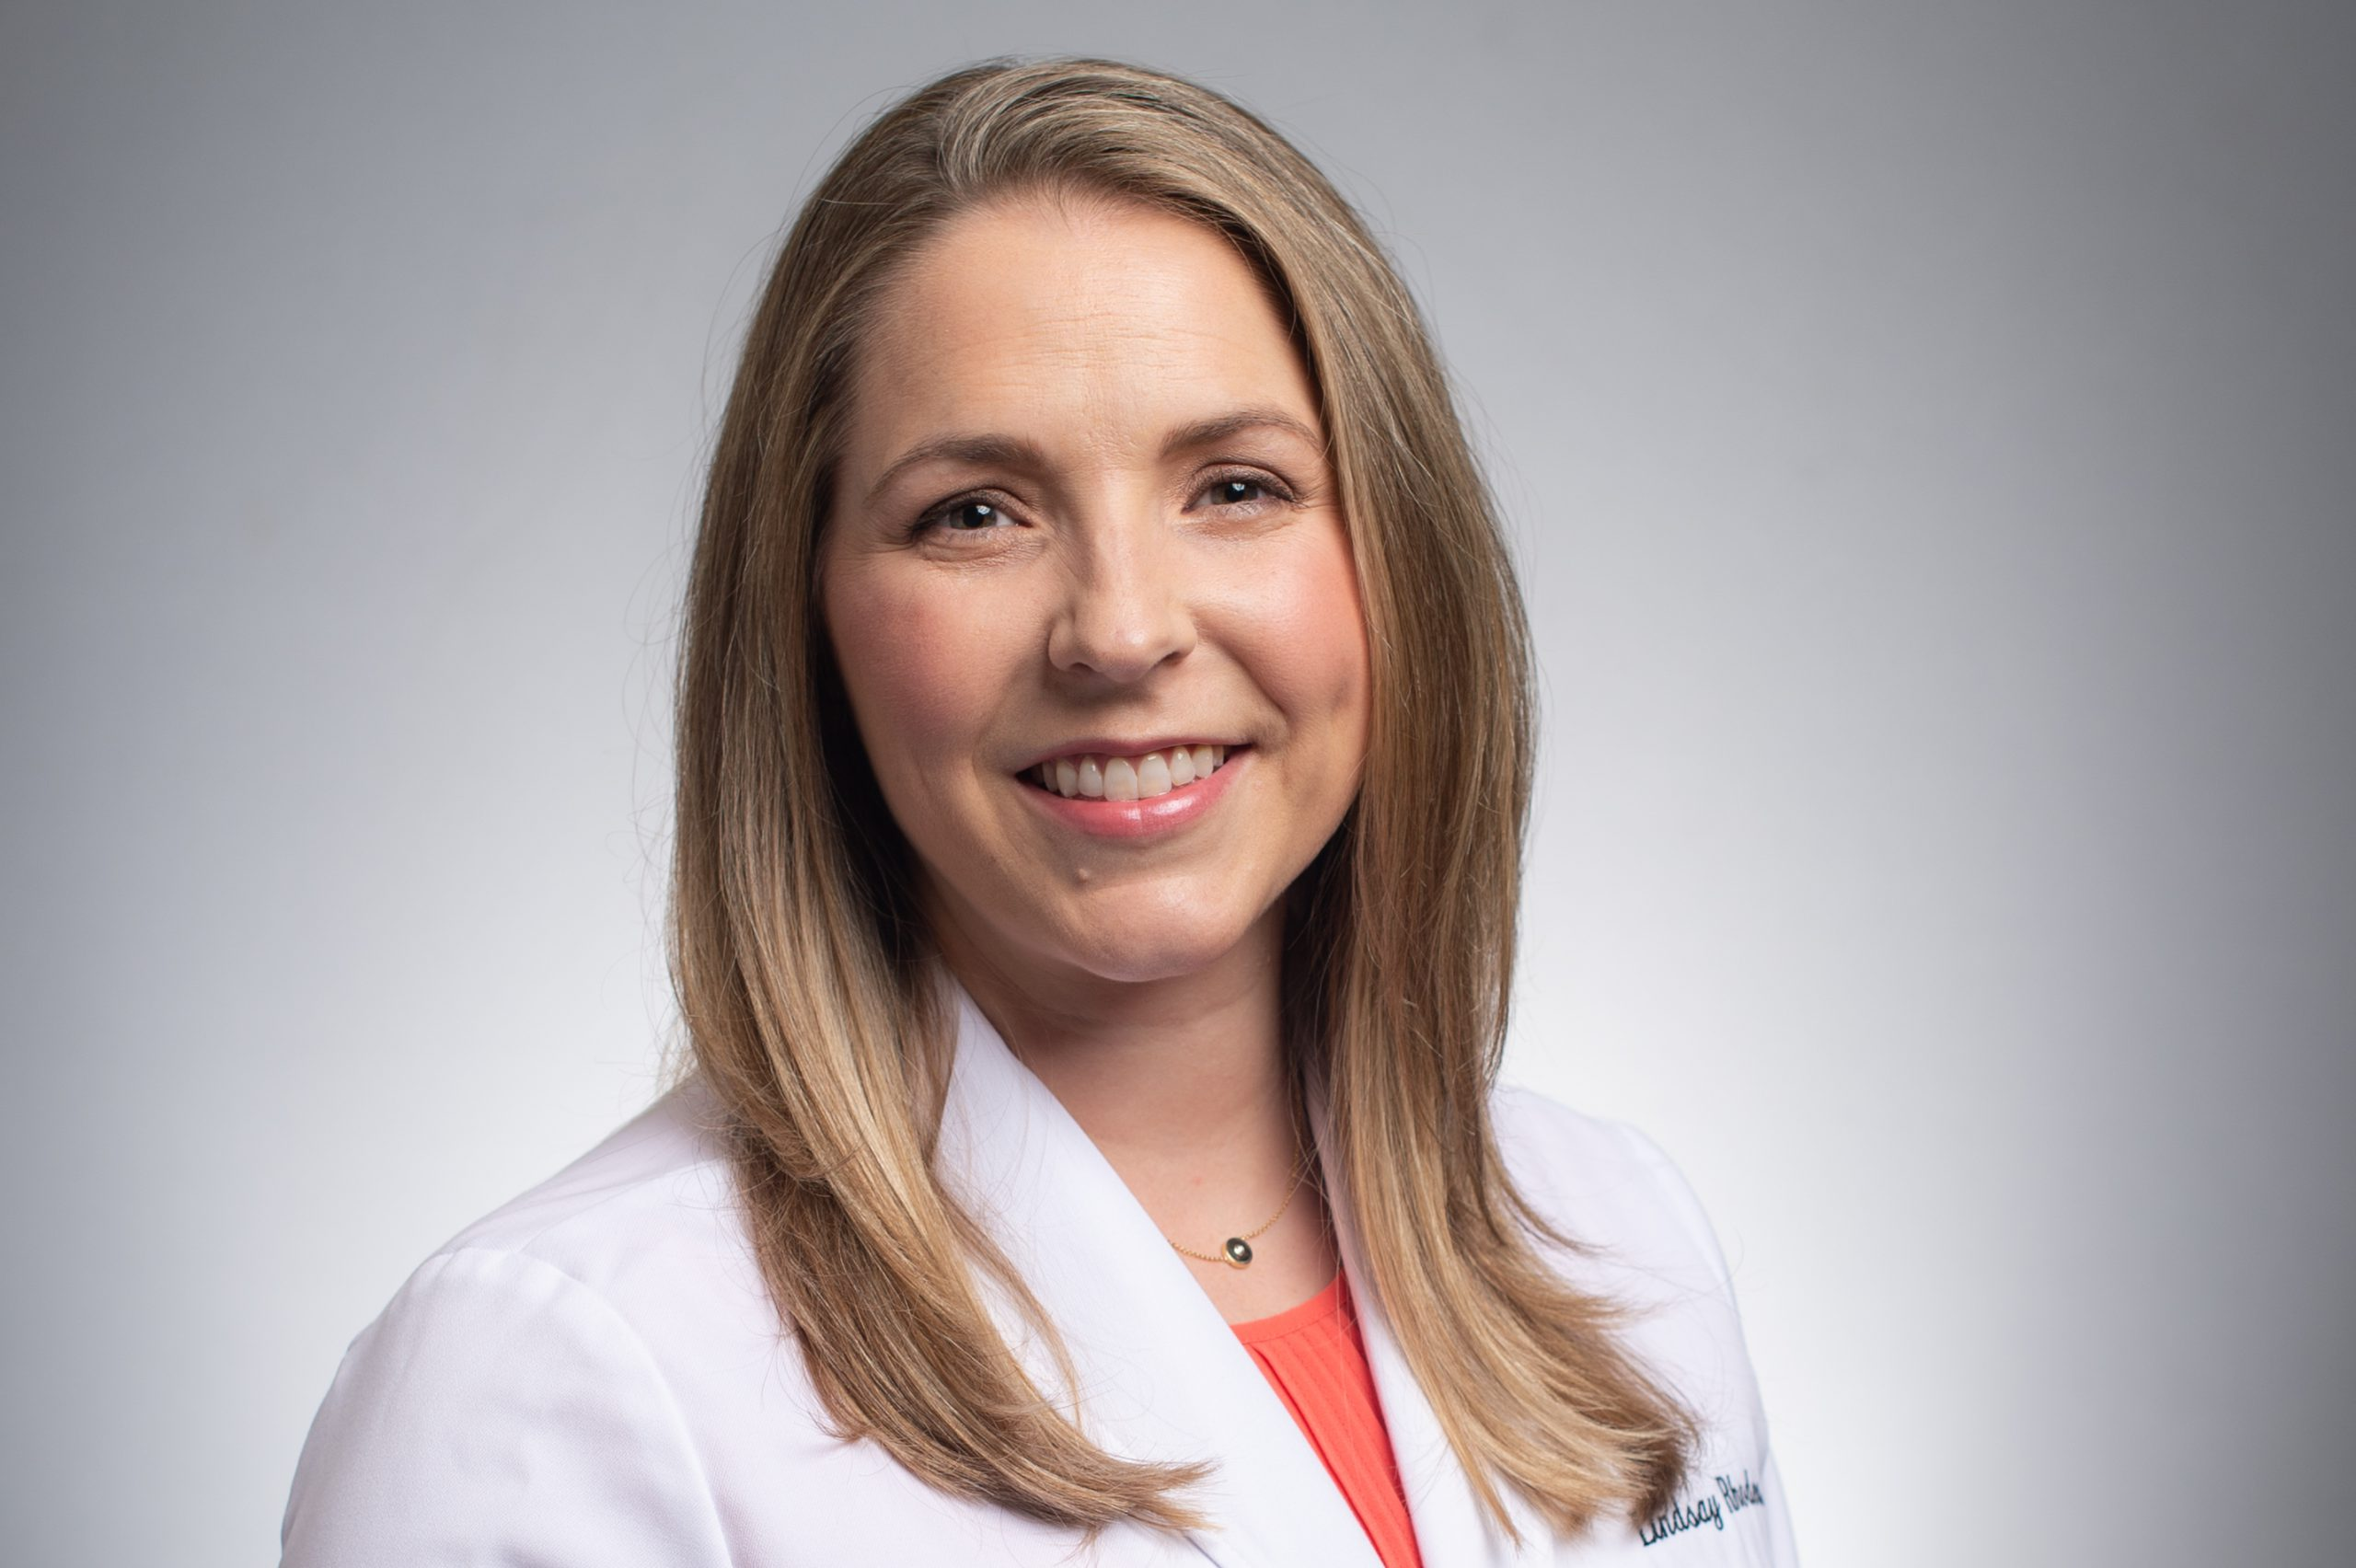 Headshot of Dr. Lindsay Rhodes, MD (Assistant Professor, (opens a new window)